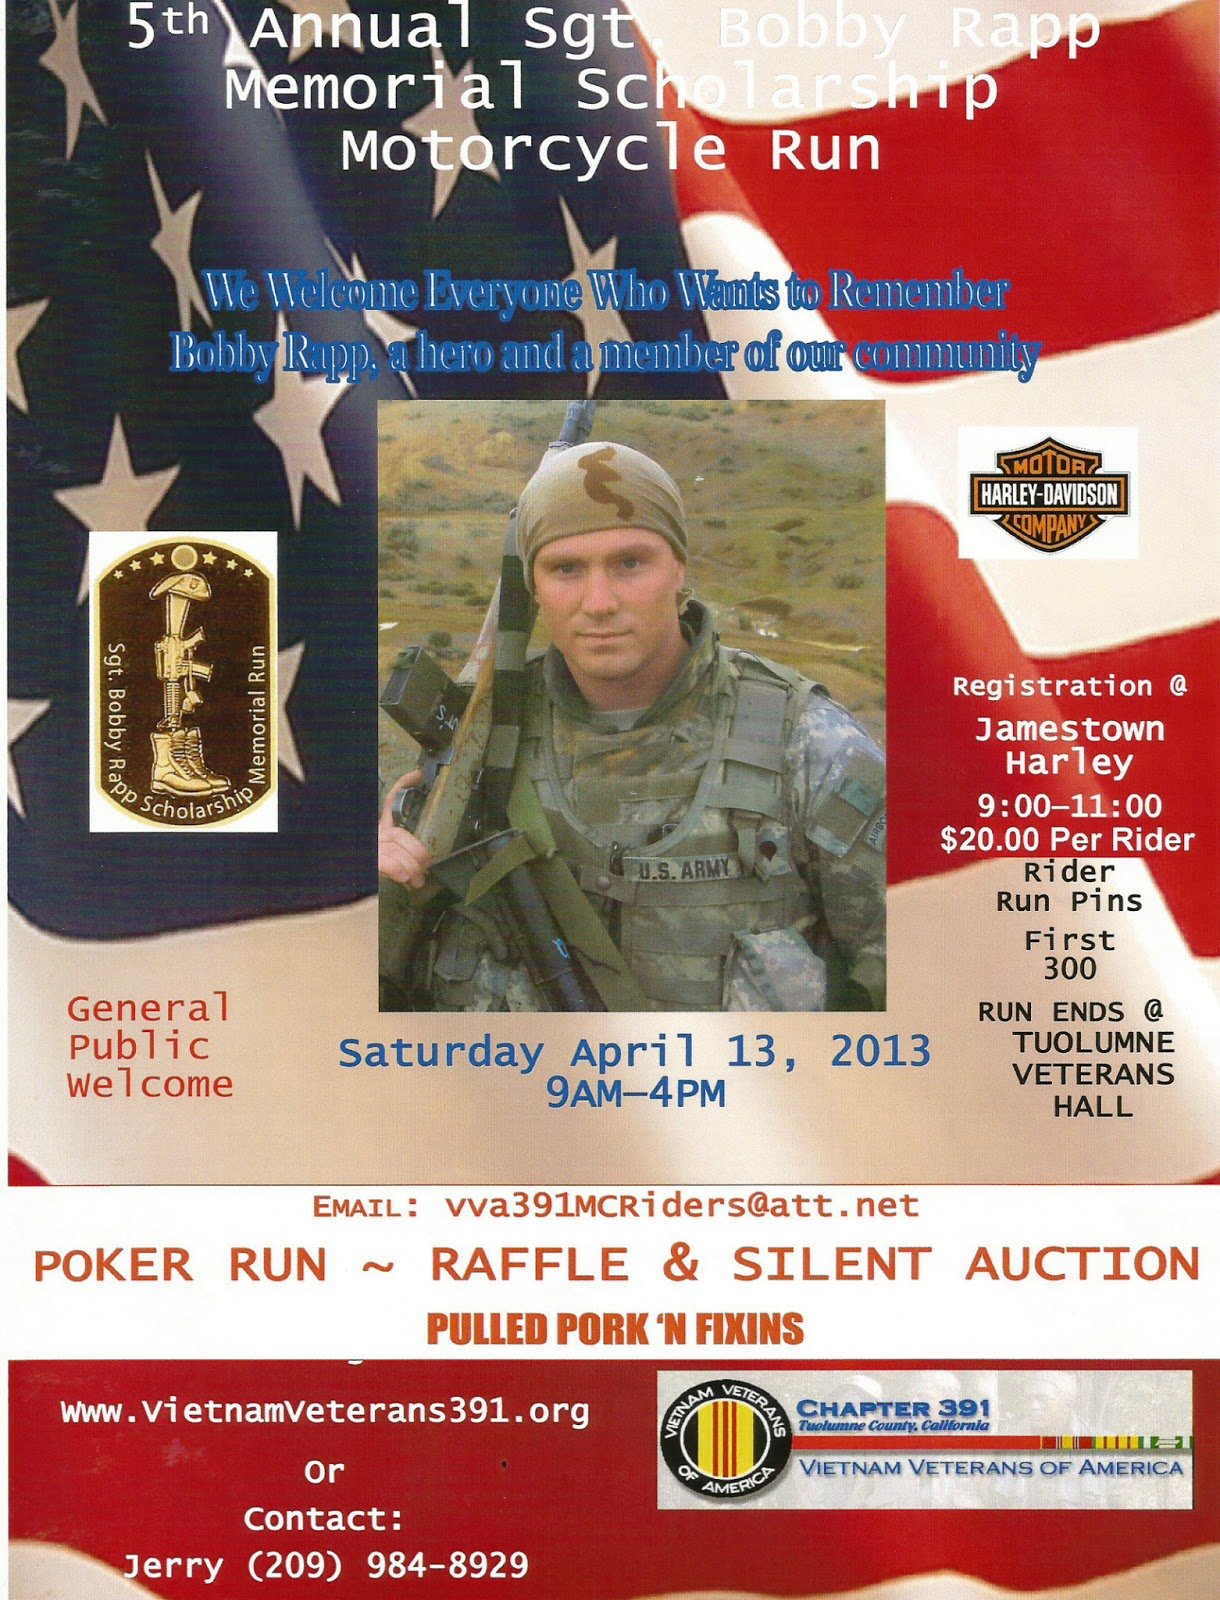 Copper Gazette  5th Annual Sgt Bobby Rapp Motorcycle Run